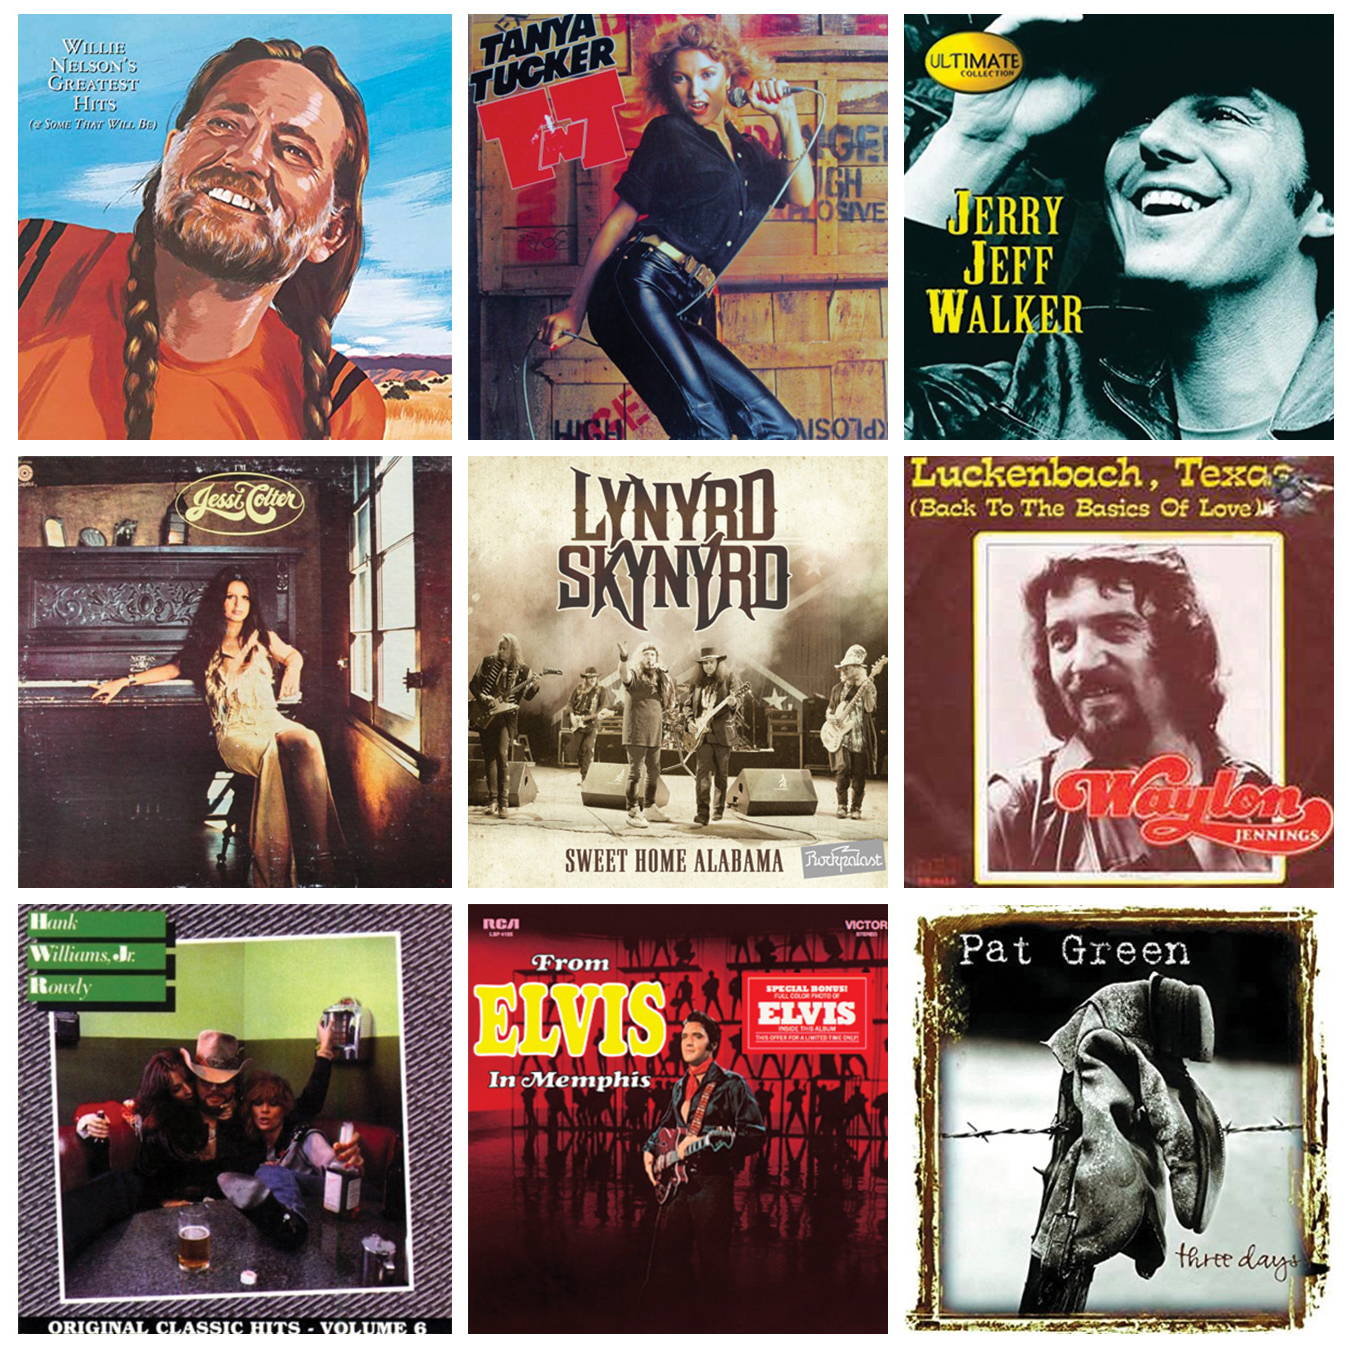 Willie's Picnic Playlist